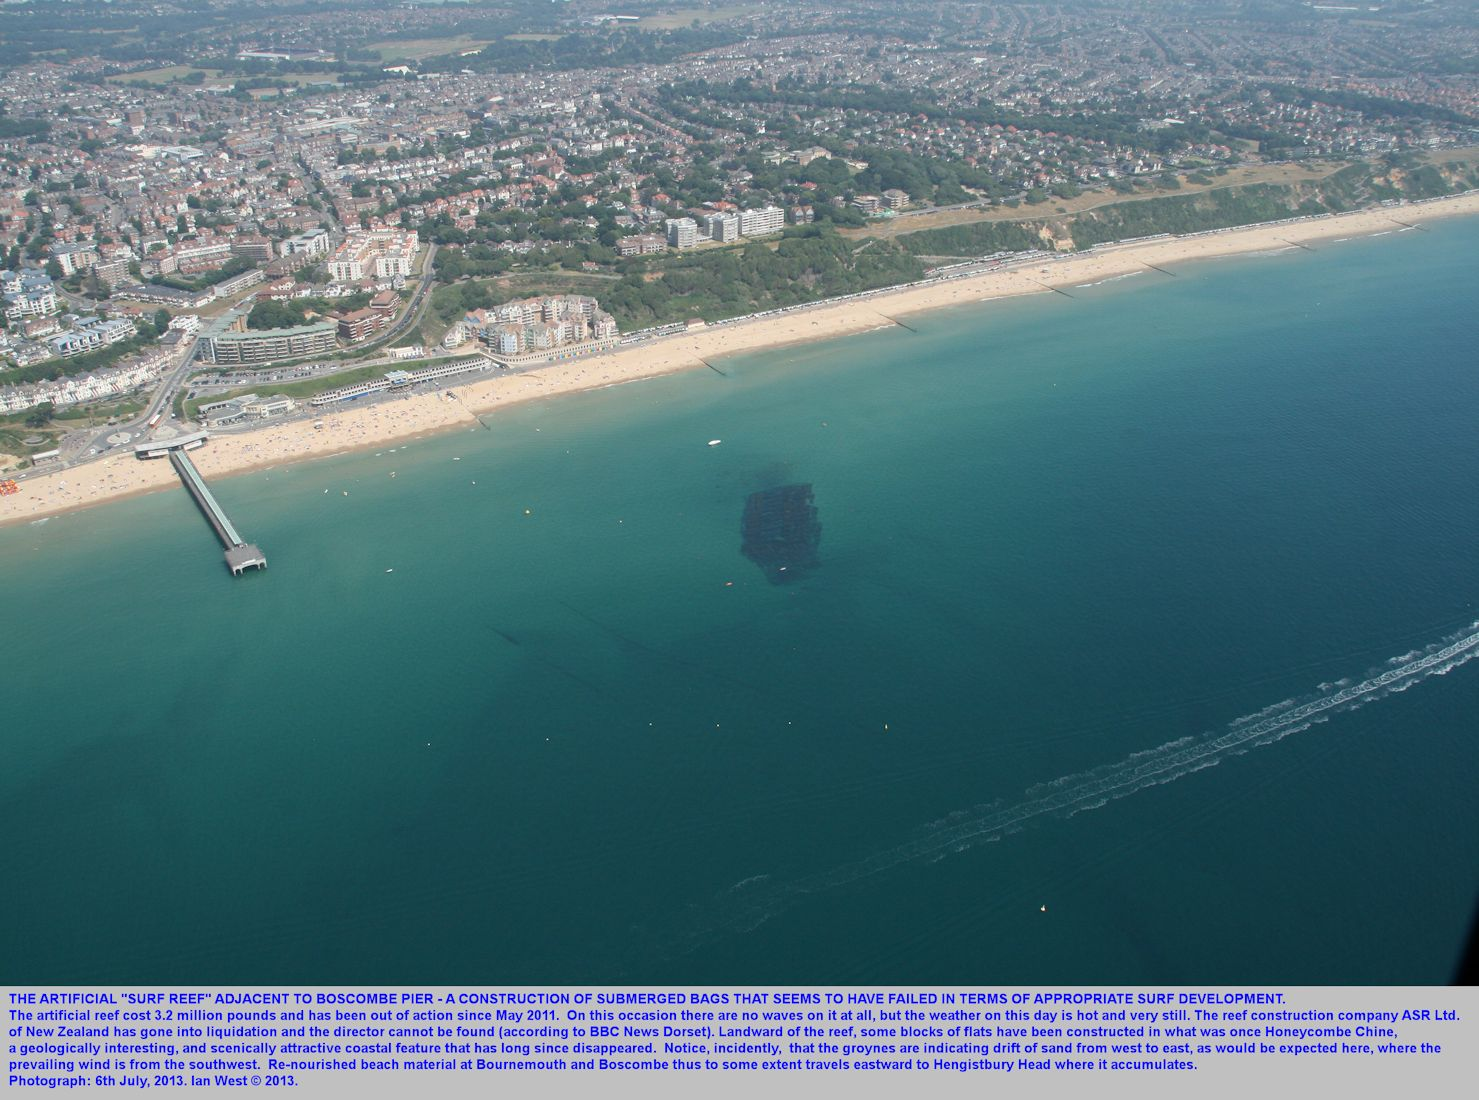 The artificial surf reef east of Boscombe Pier, Bournemouth, Dorset, as seen by helicopter on the 6th July 2013.